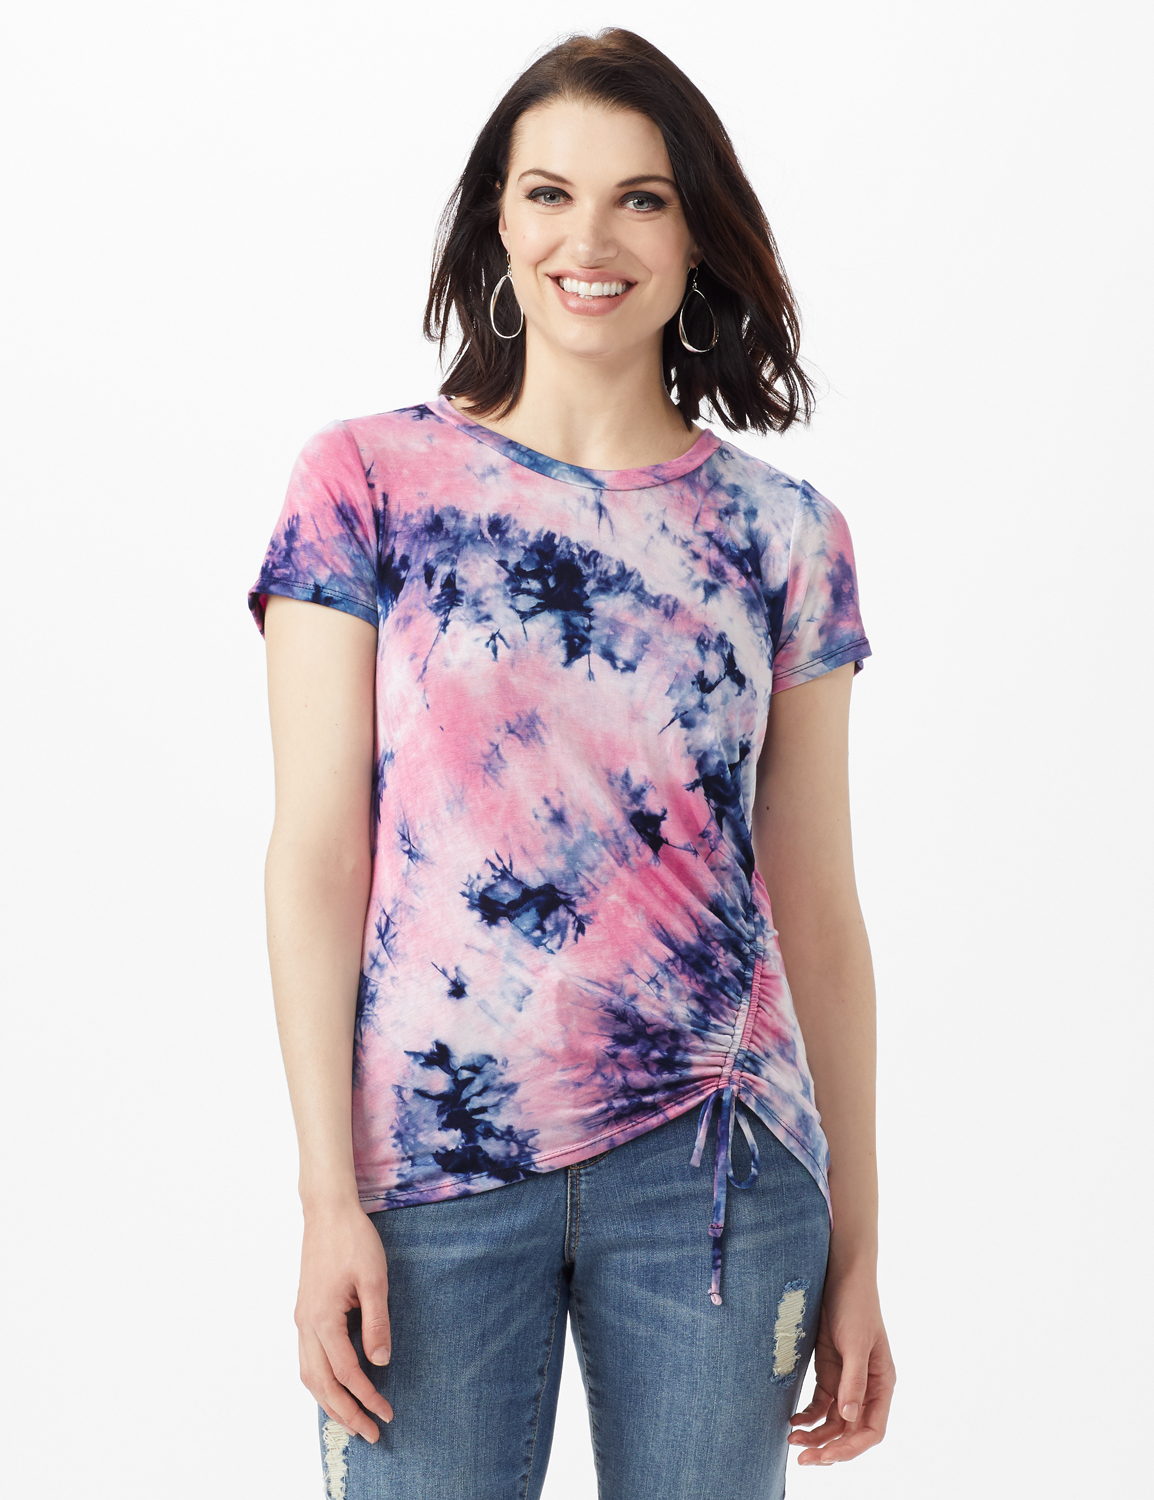 Tye Dye Ruched Tie Front Top - Misses -Pink - Front